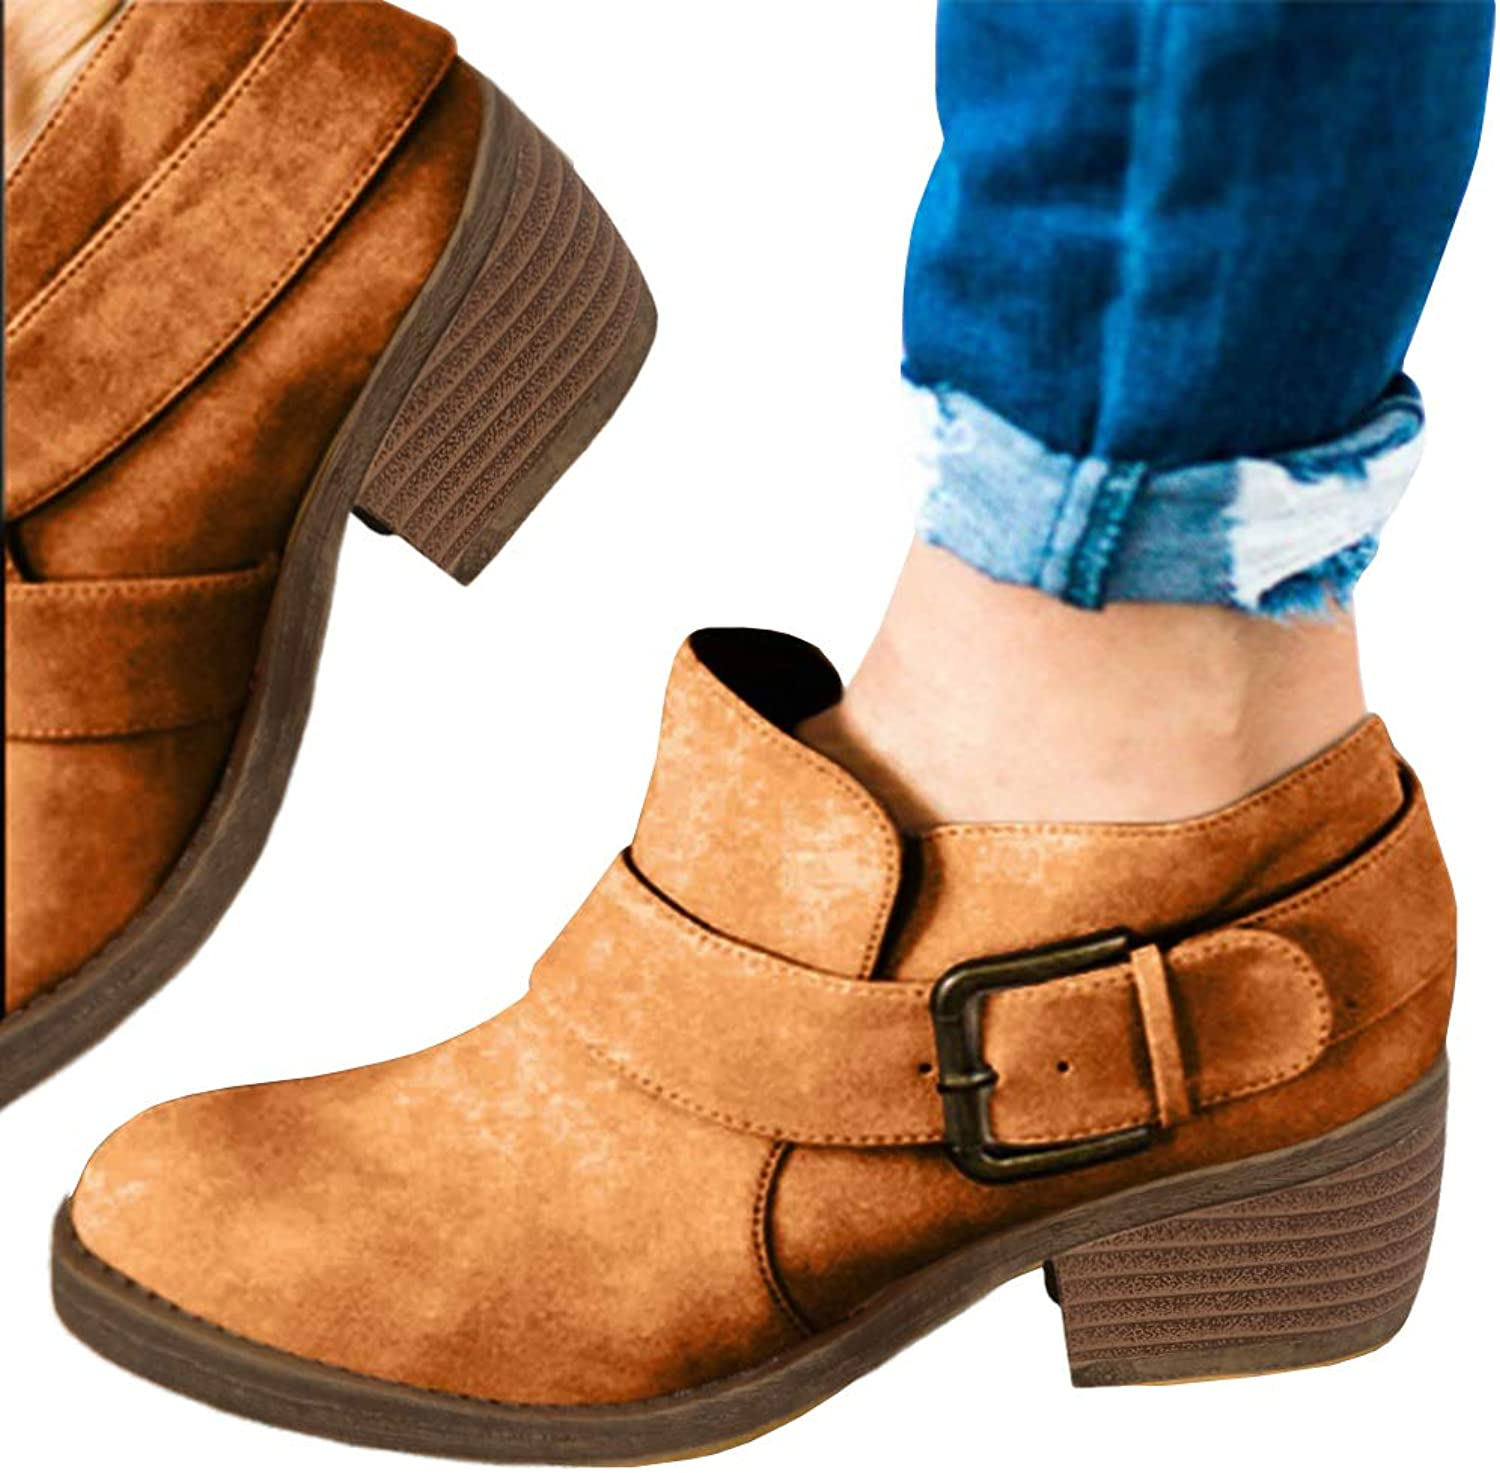 Cicy Bell Womens Ankle Fall Boots Buckle Strap Almond Toe Block Heel Chunky Slip on Booties